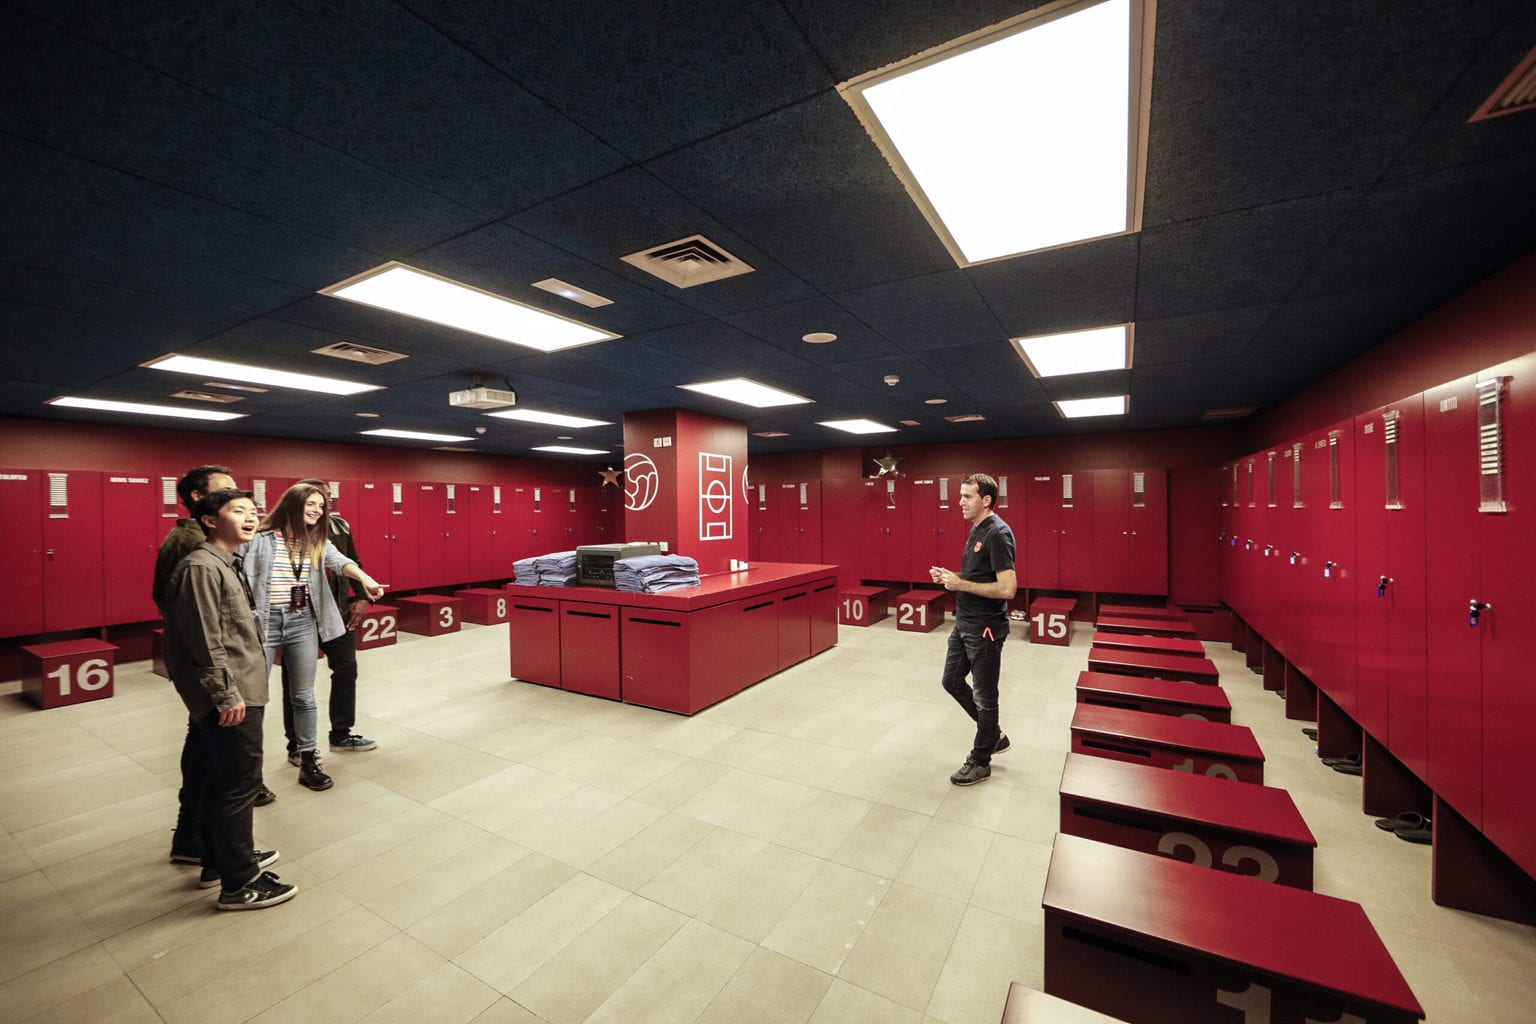 FC Barcelona changing rooms